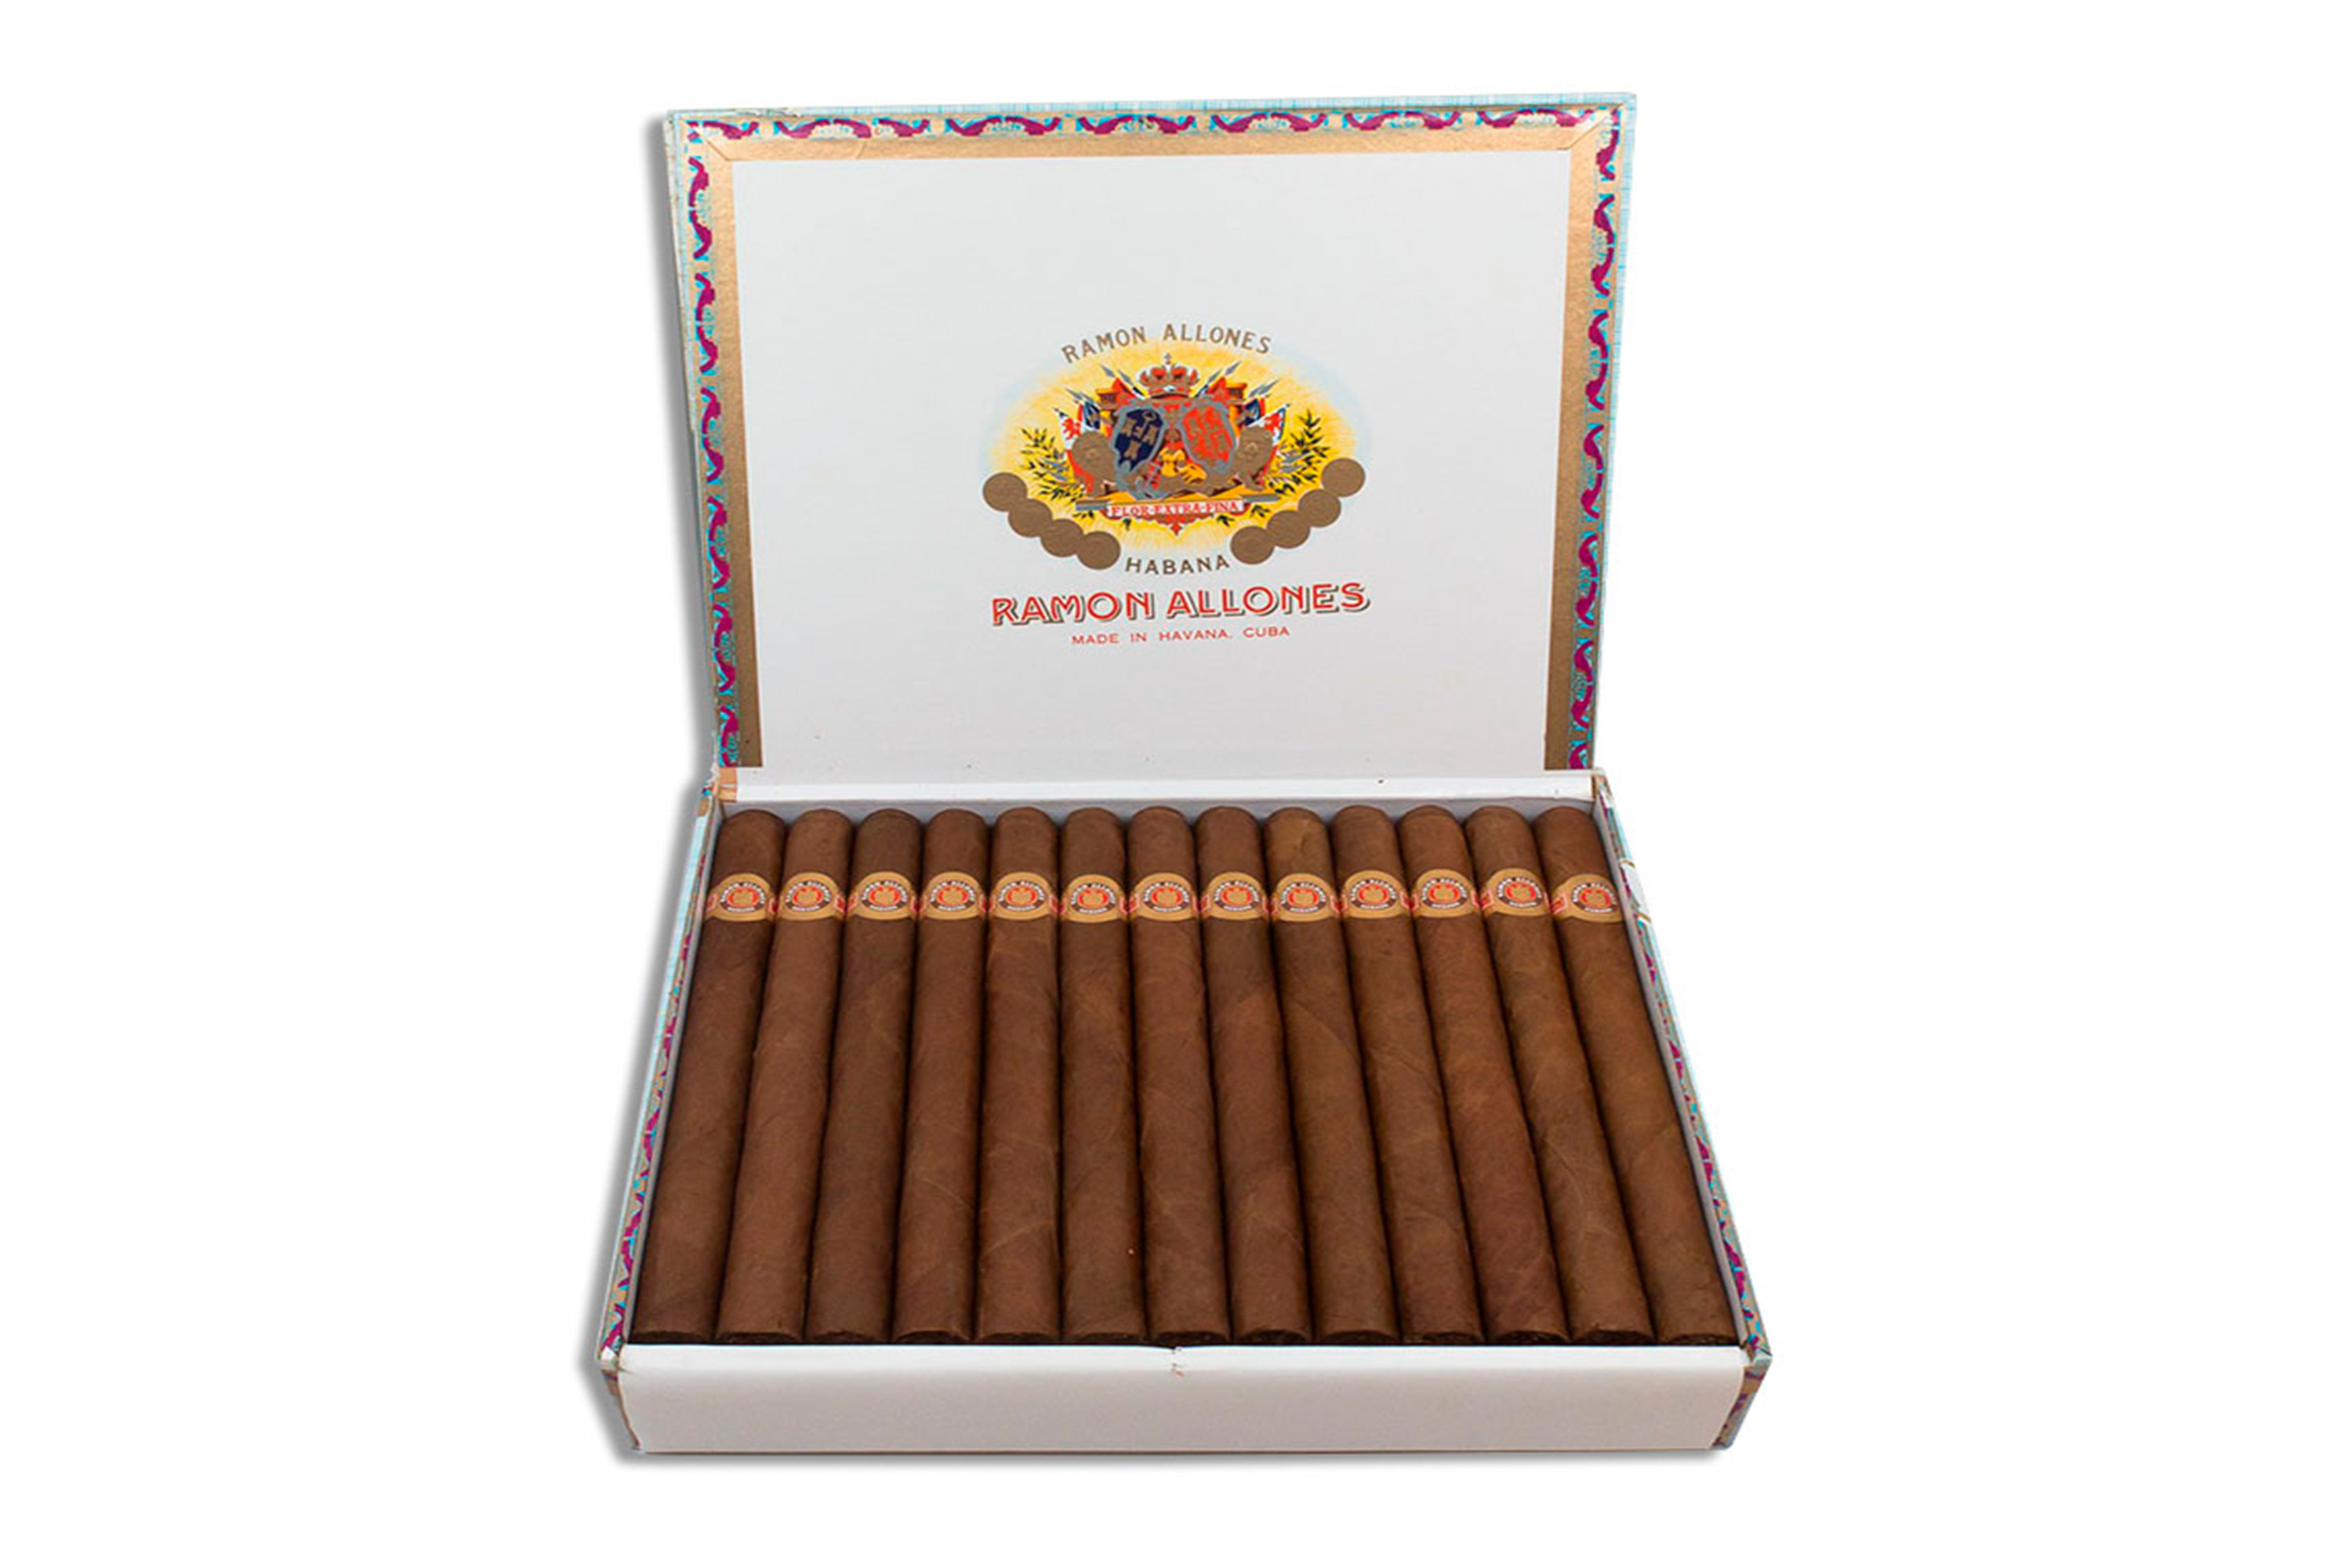 ramon allones gigantes Classic Shop